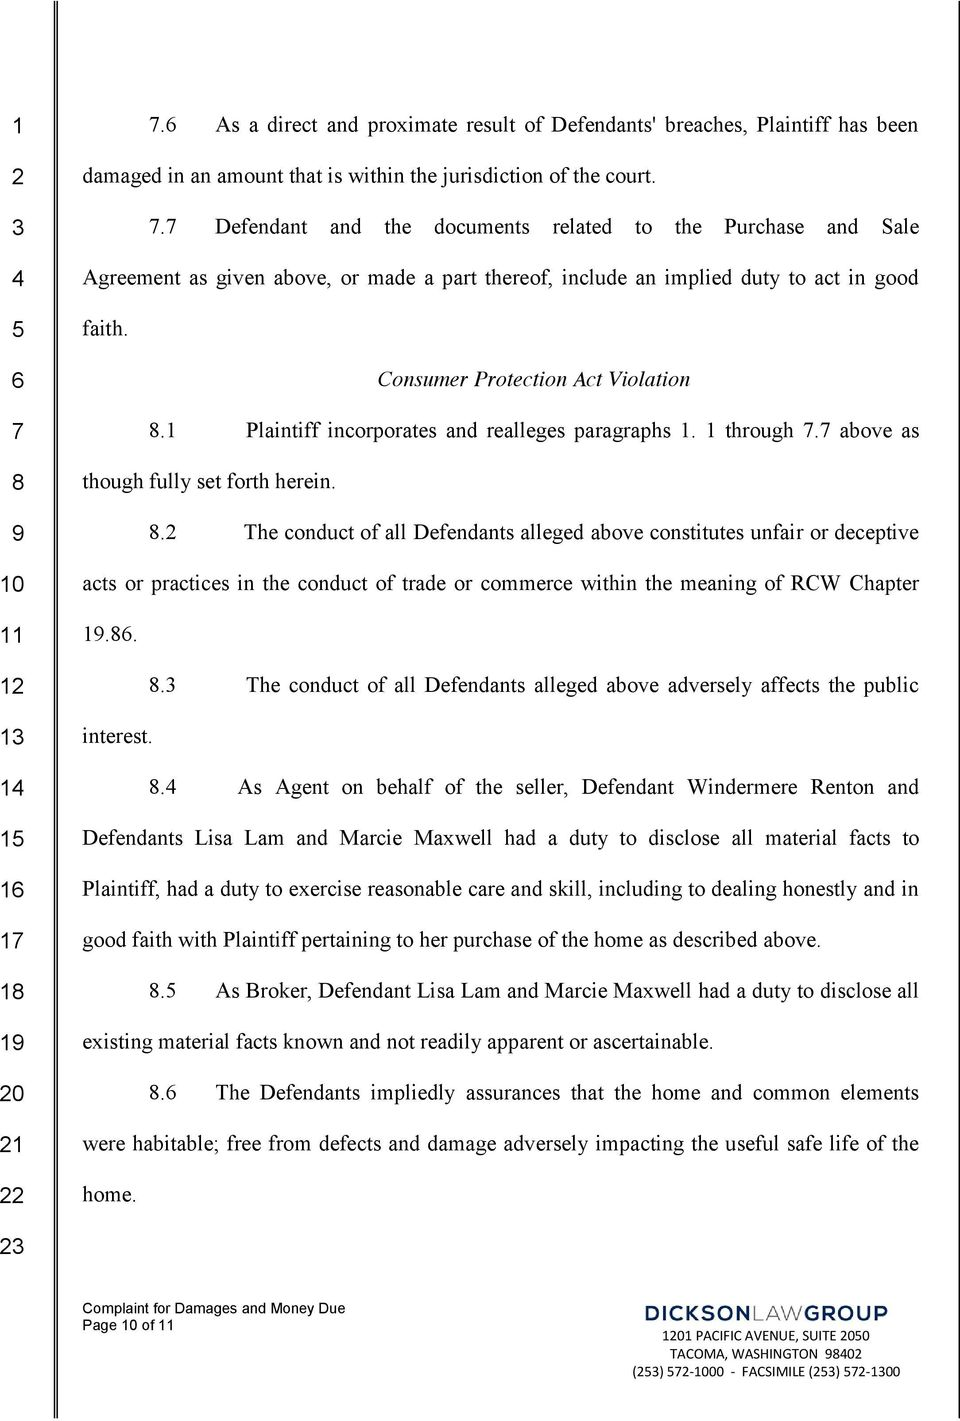 1 Plaintiff incorporates and realleges paragraphs 1. 1 through. above as.